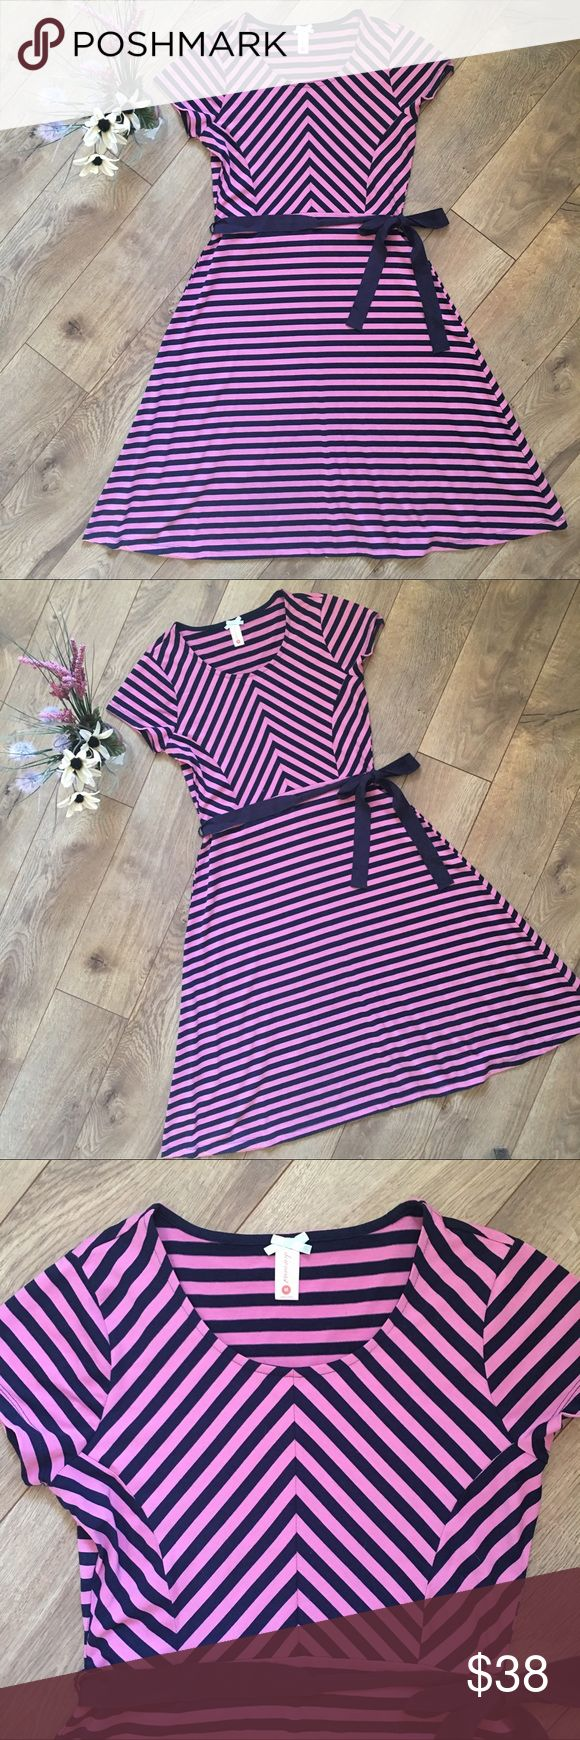 DOWNEAST Pink & Navy Striped A-line Dress - M DOWNEAST Pink & Navy Striped A-line Dress - Medium. Excellent used condition. Soft stretchy material. Only worn twice. No issues. Smoke free home. downeast Dresses